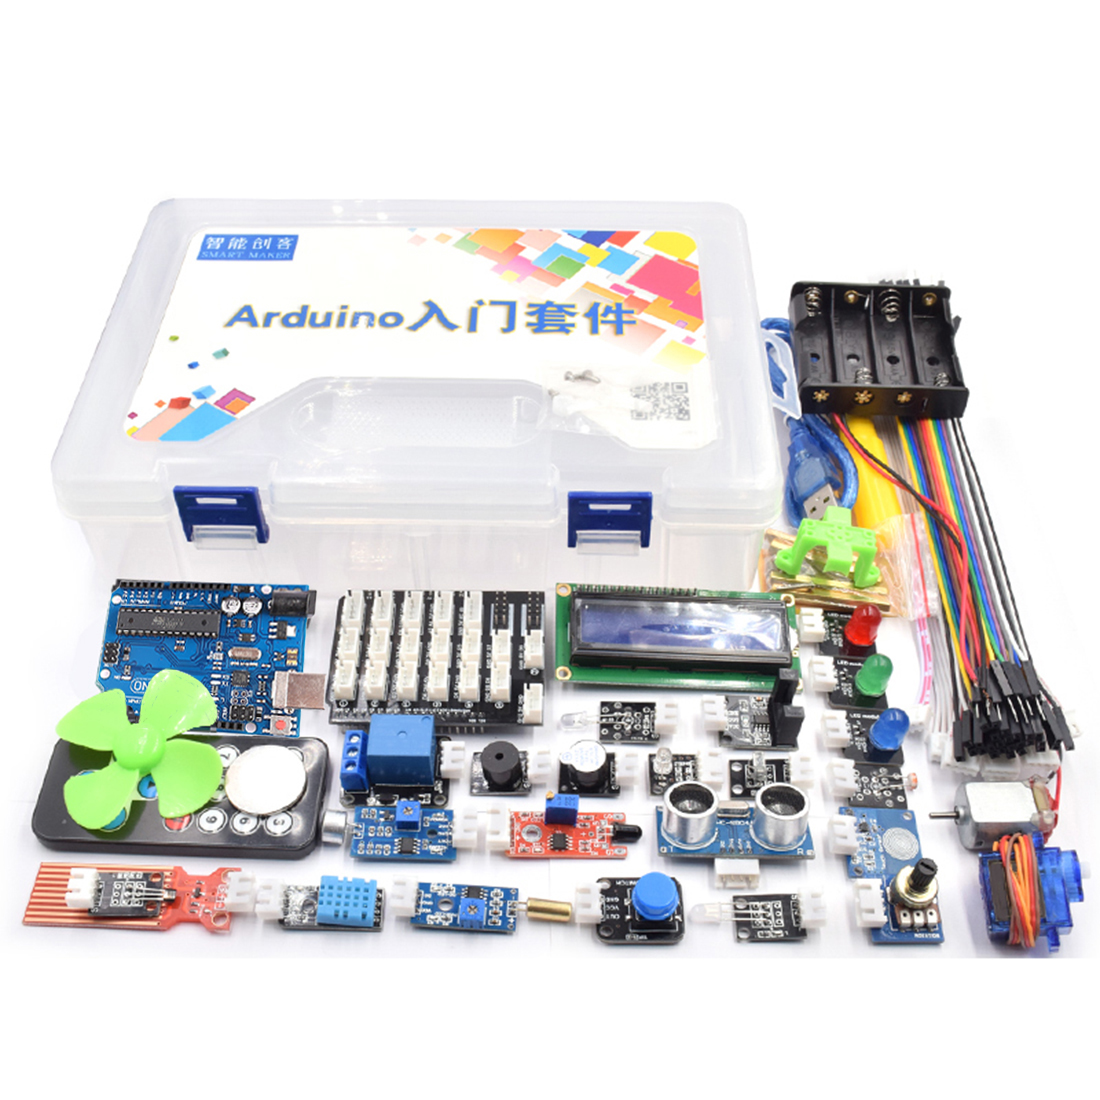 MODIKER Mixly Graphical Programming Learning Singlechip Development Board Kit For Arduino Programmable Toys Accessories